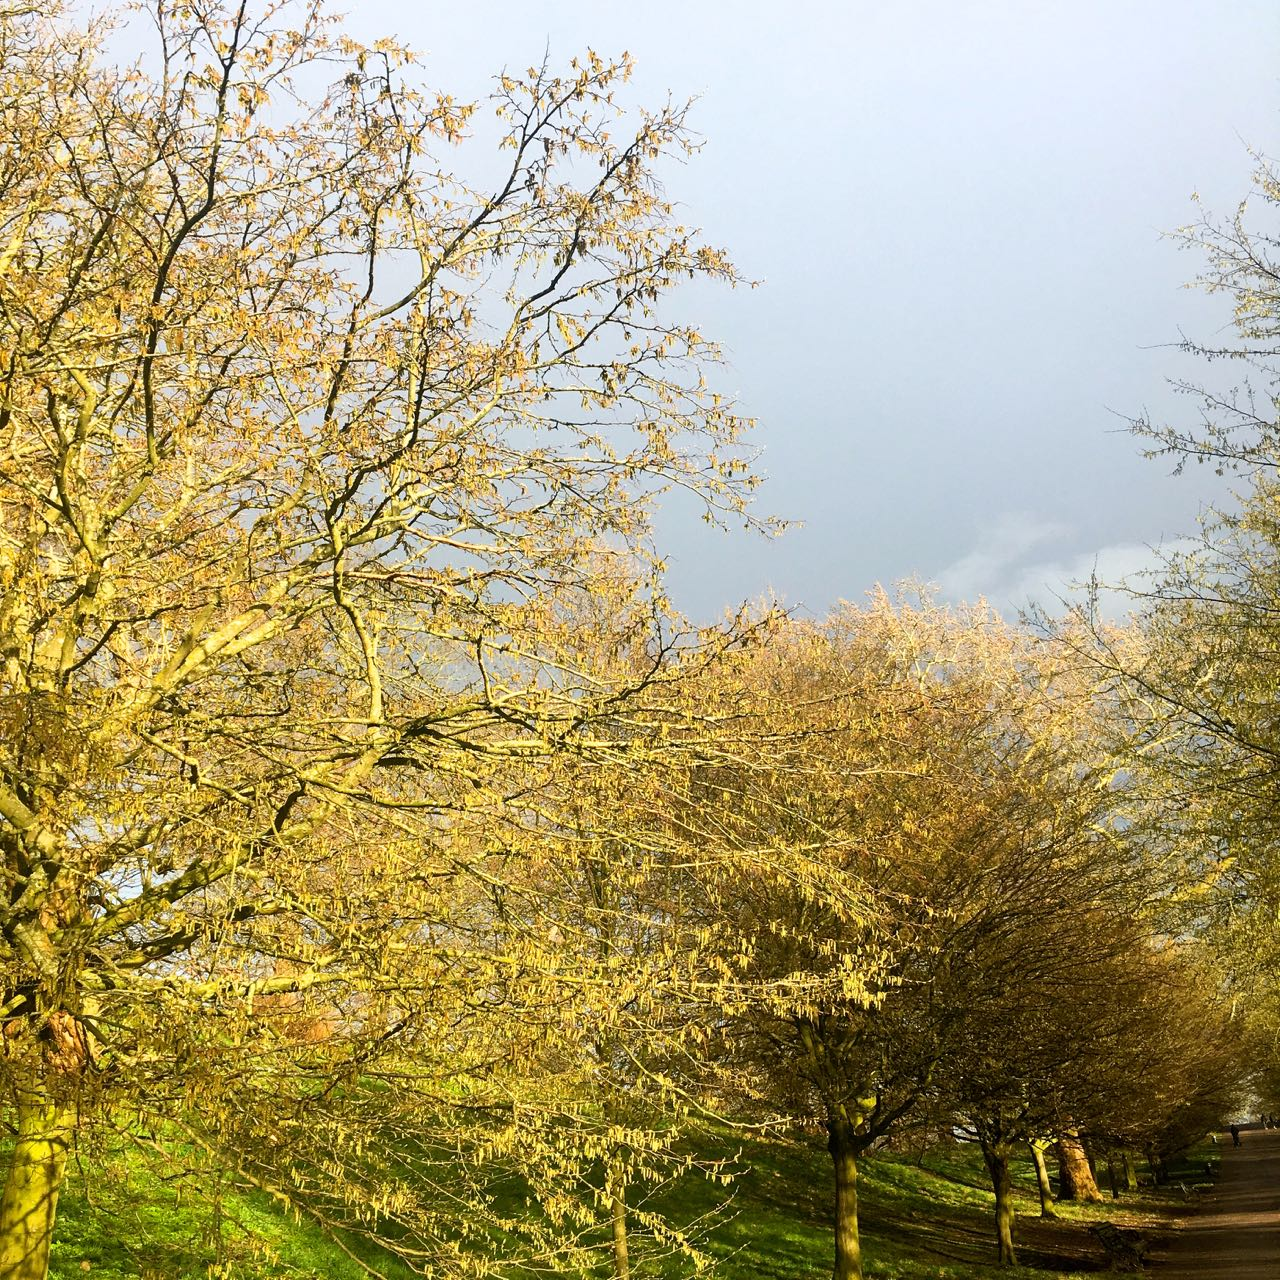 Moody skies and sunlit trees in Greenwich Park